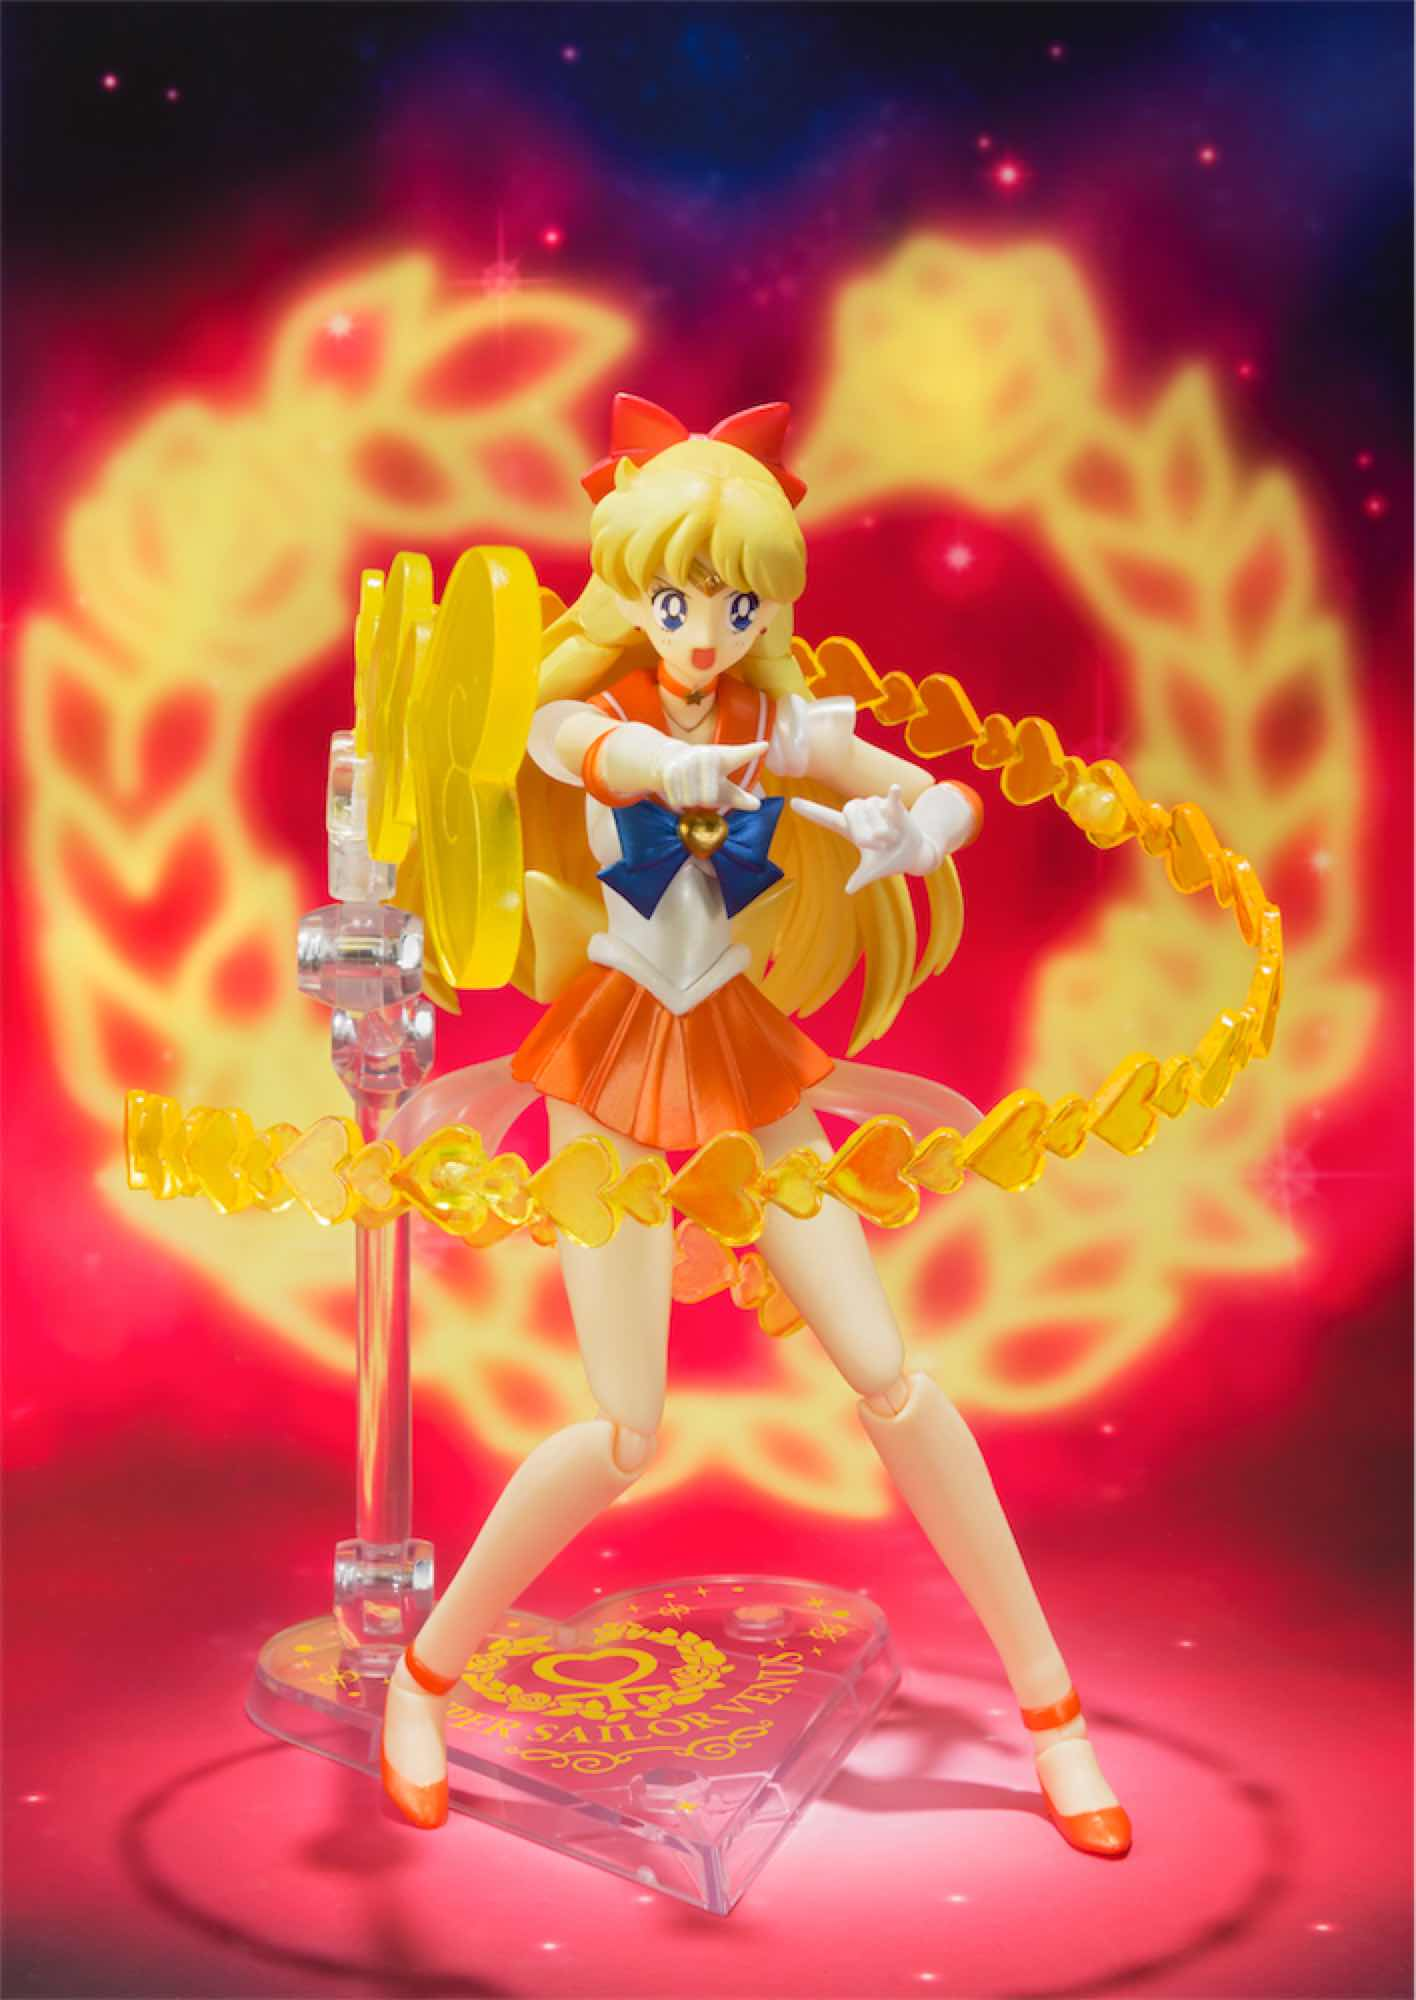 CAROLA SUPER SAILOR VENUS FIGURA 14.5 CM SAILOR MOON SUPERS S.H. FIGUARTS